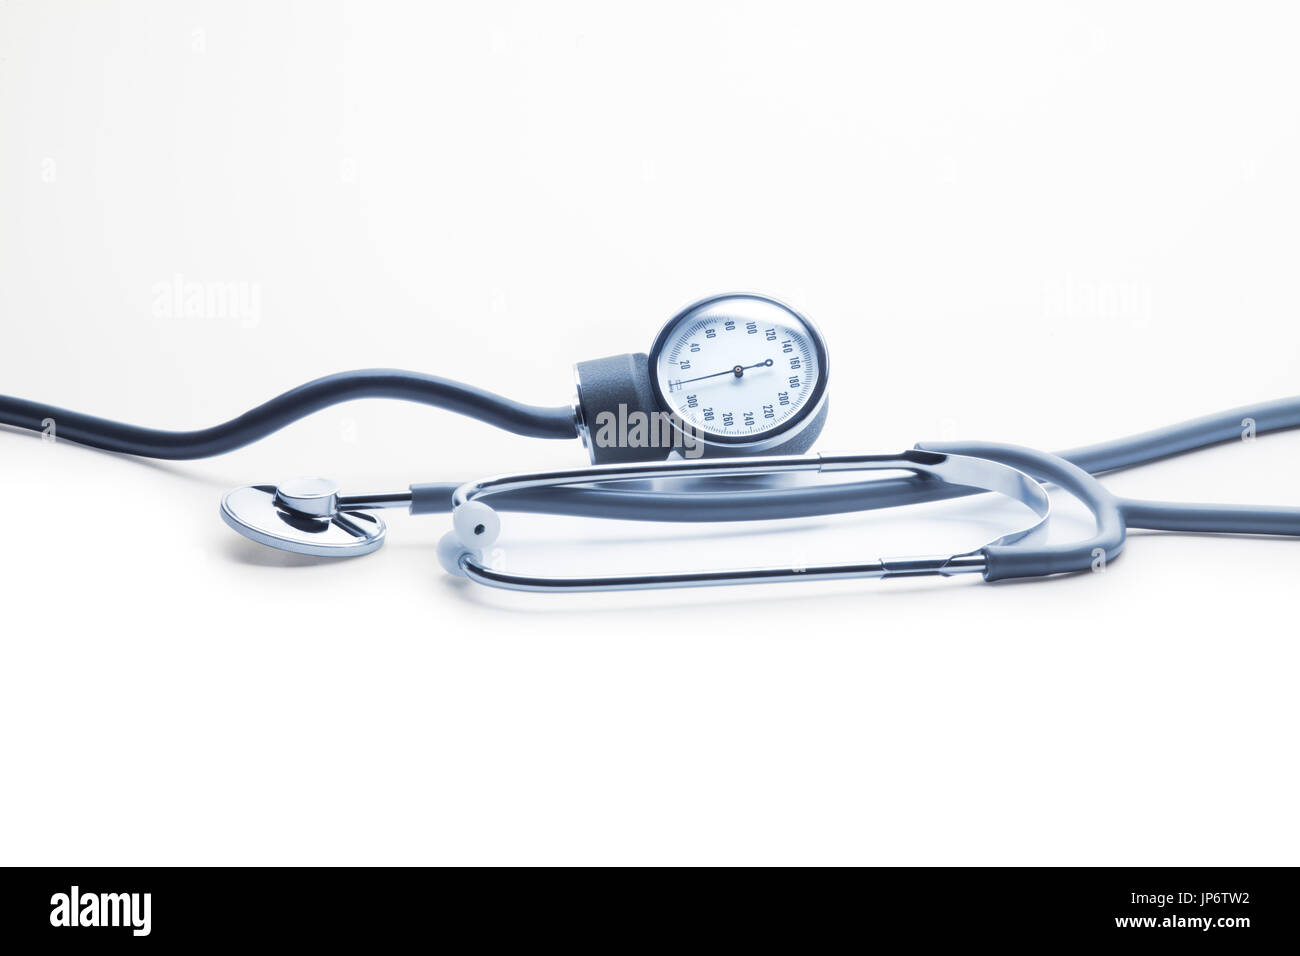 Blood pressure kit against white background. Pressure gauge and stethoscope. Horizontal set for banner use - Stock Image